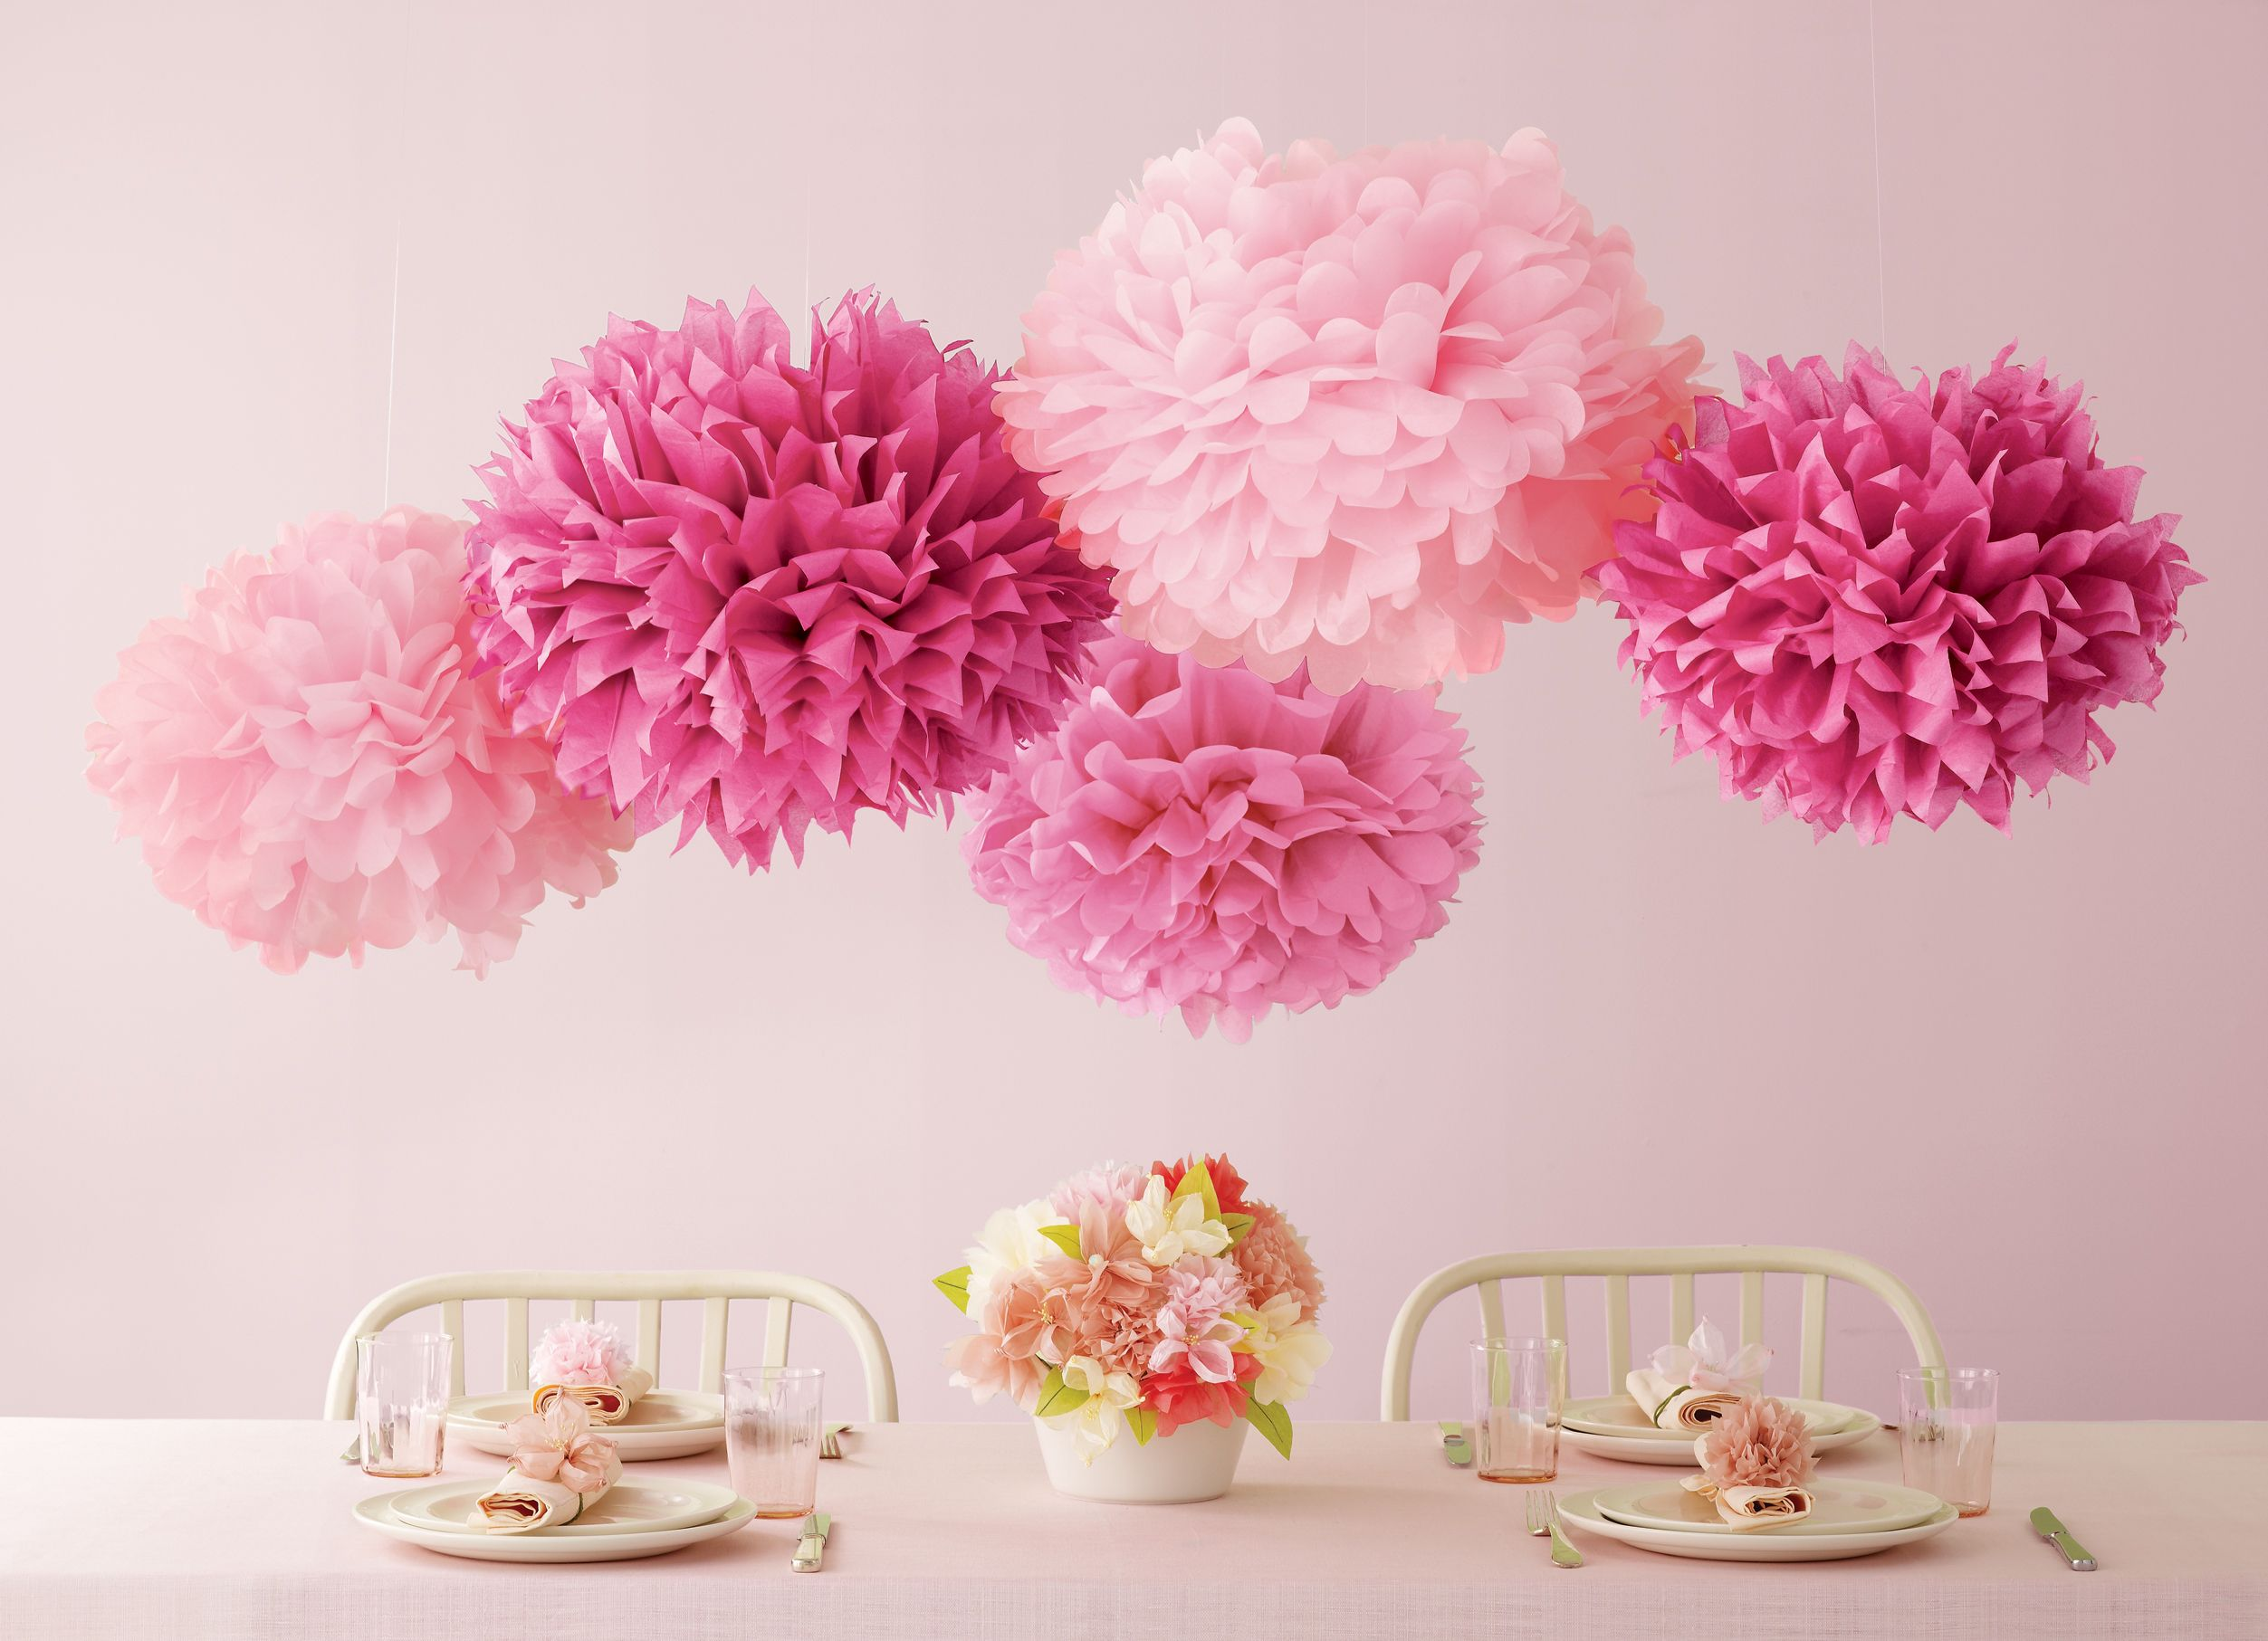 Add A Burst Of Pink To A Party Table With These Tissue Paper Pom